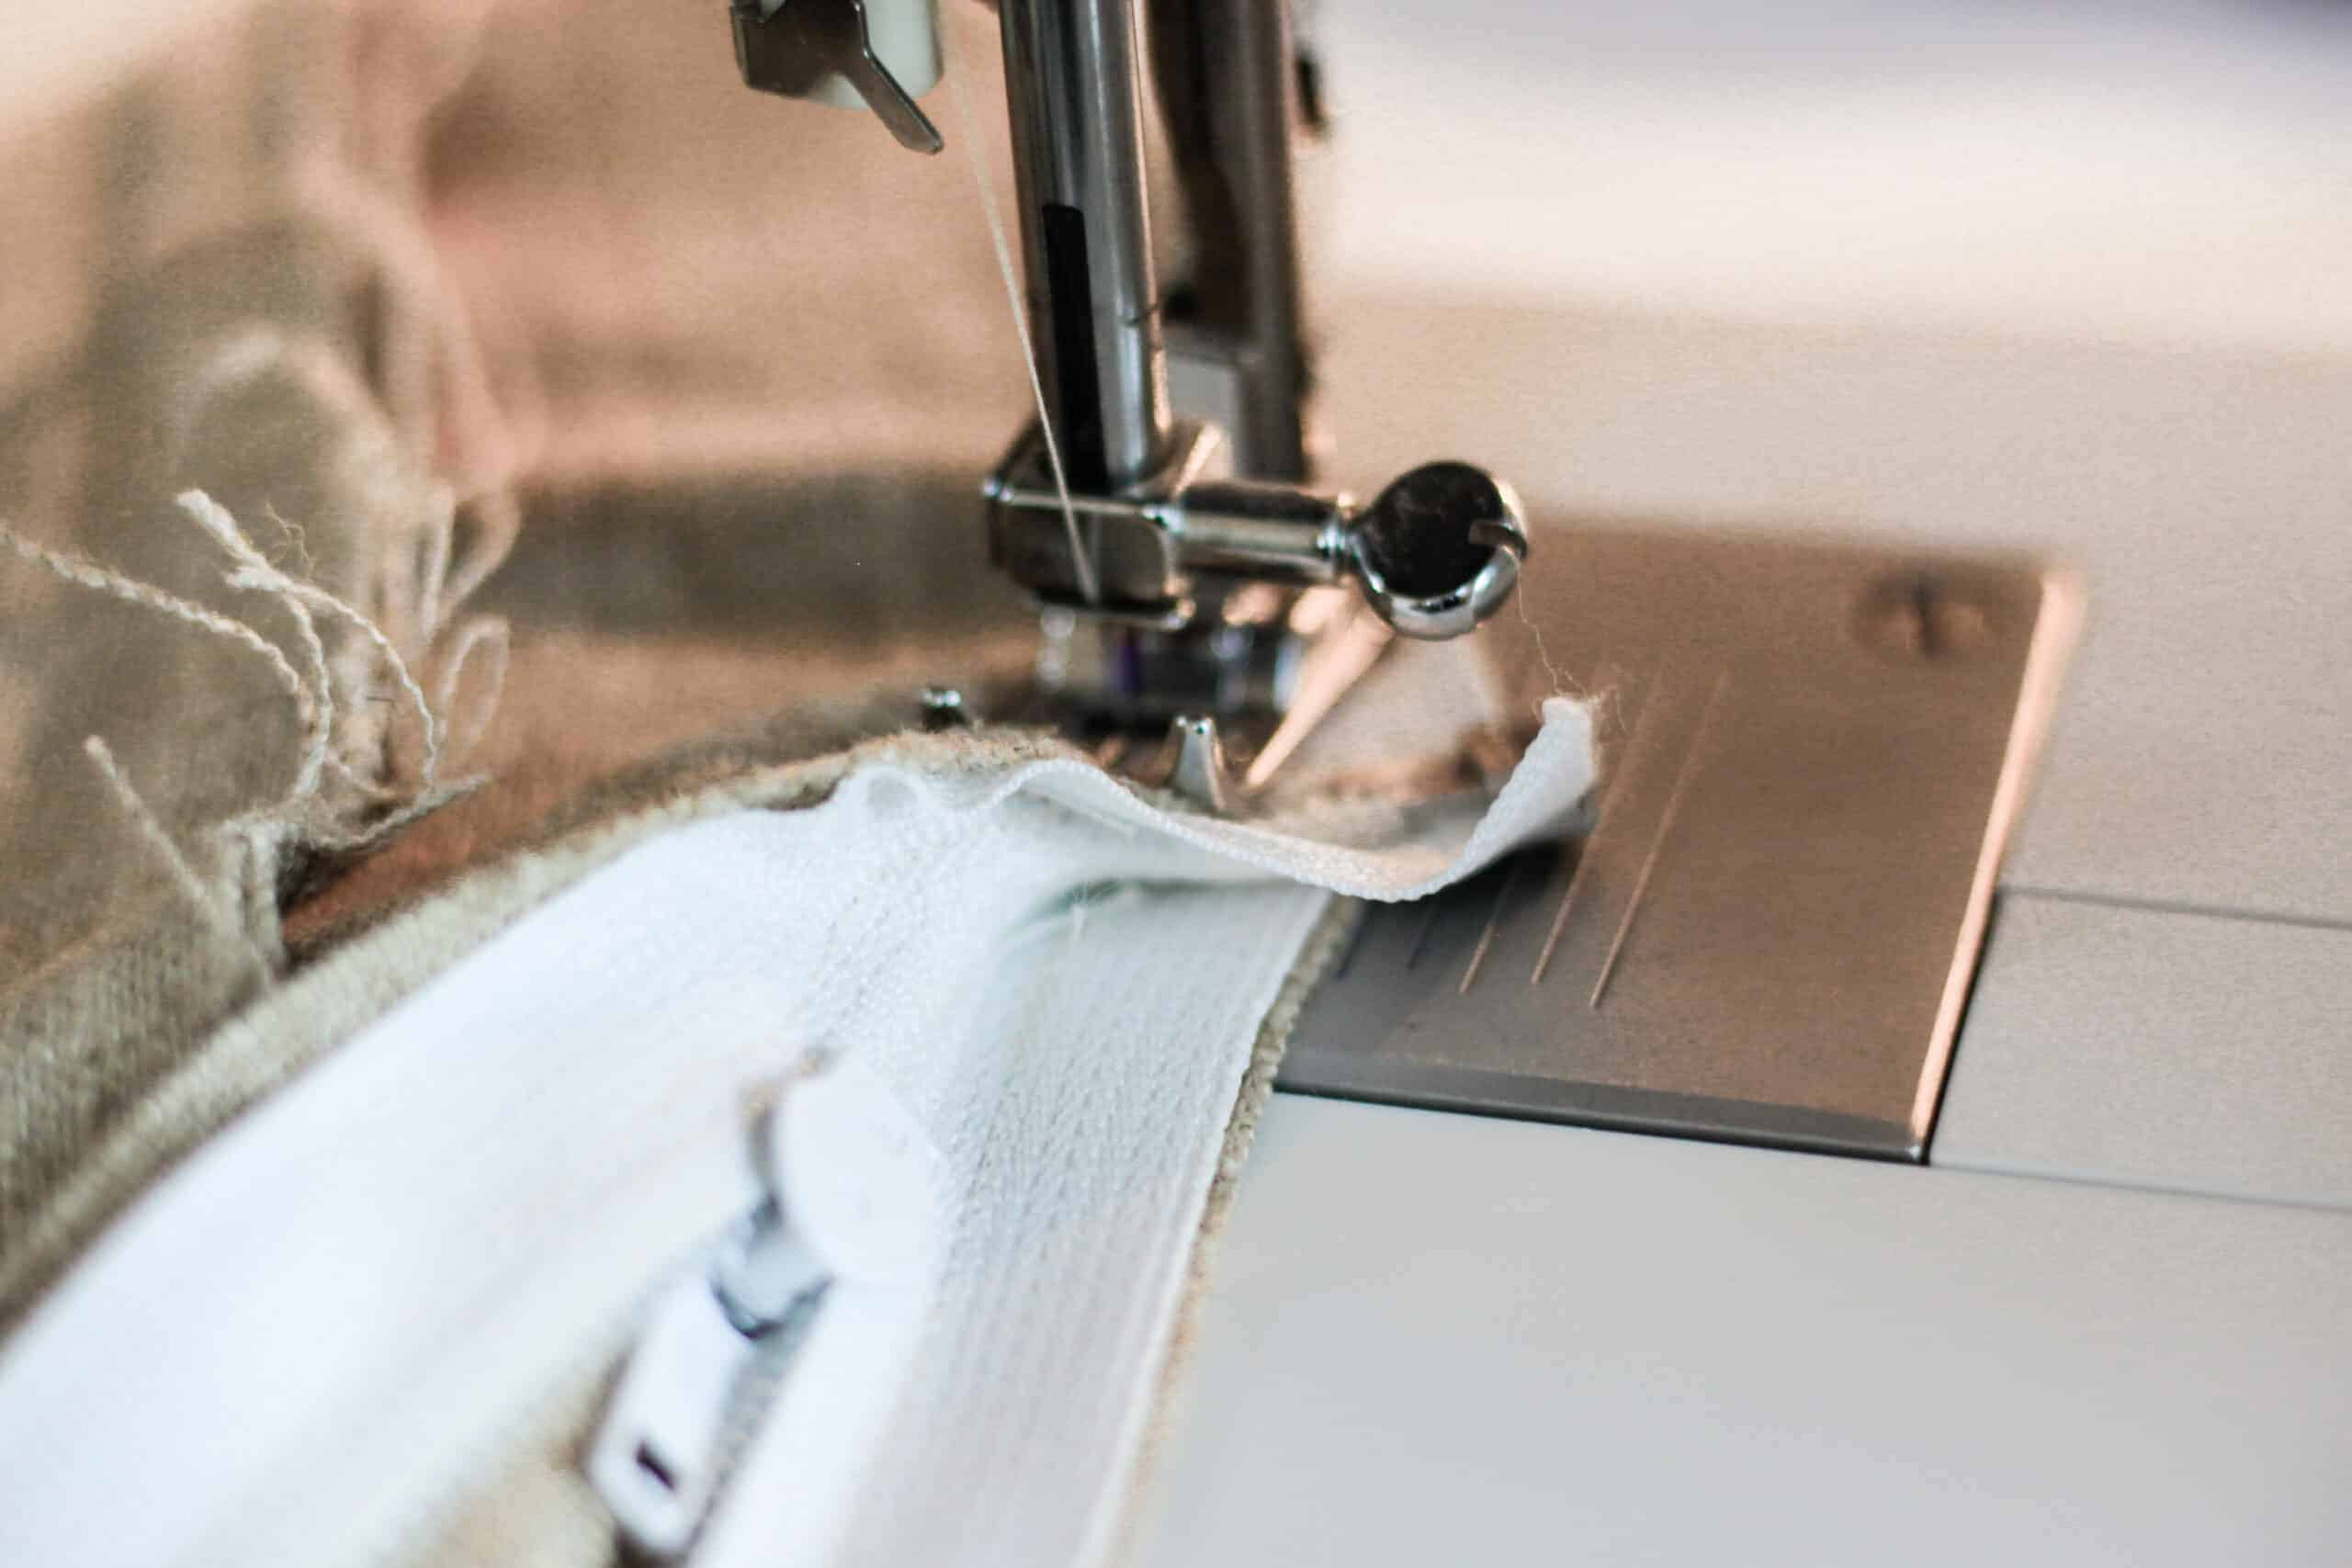 zipper on sewing machine being sewn